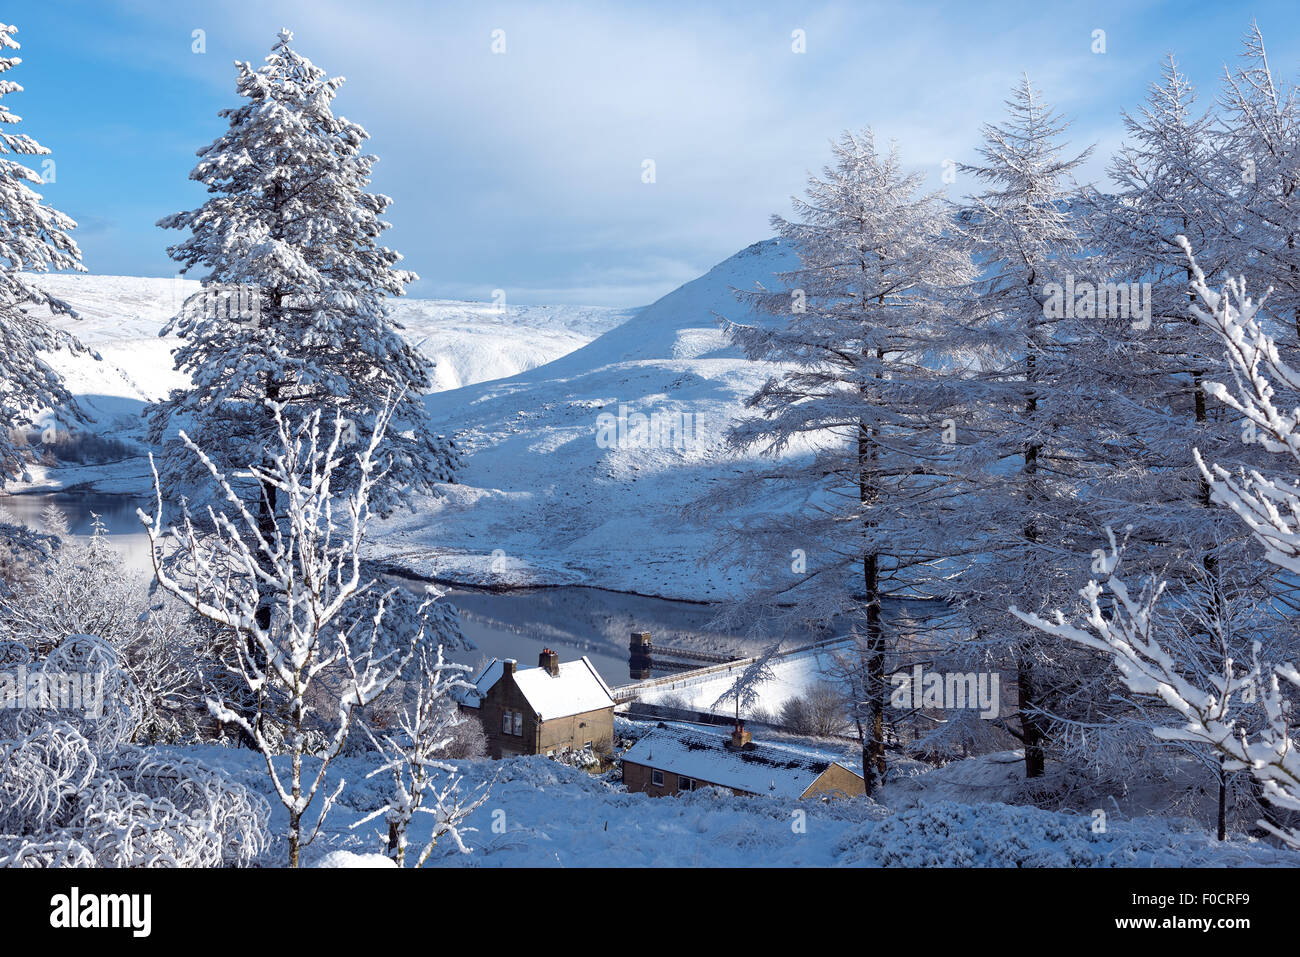 Fresh snow covering hills, trees and houses in the Peak district, North West England. - Stock Image